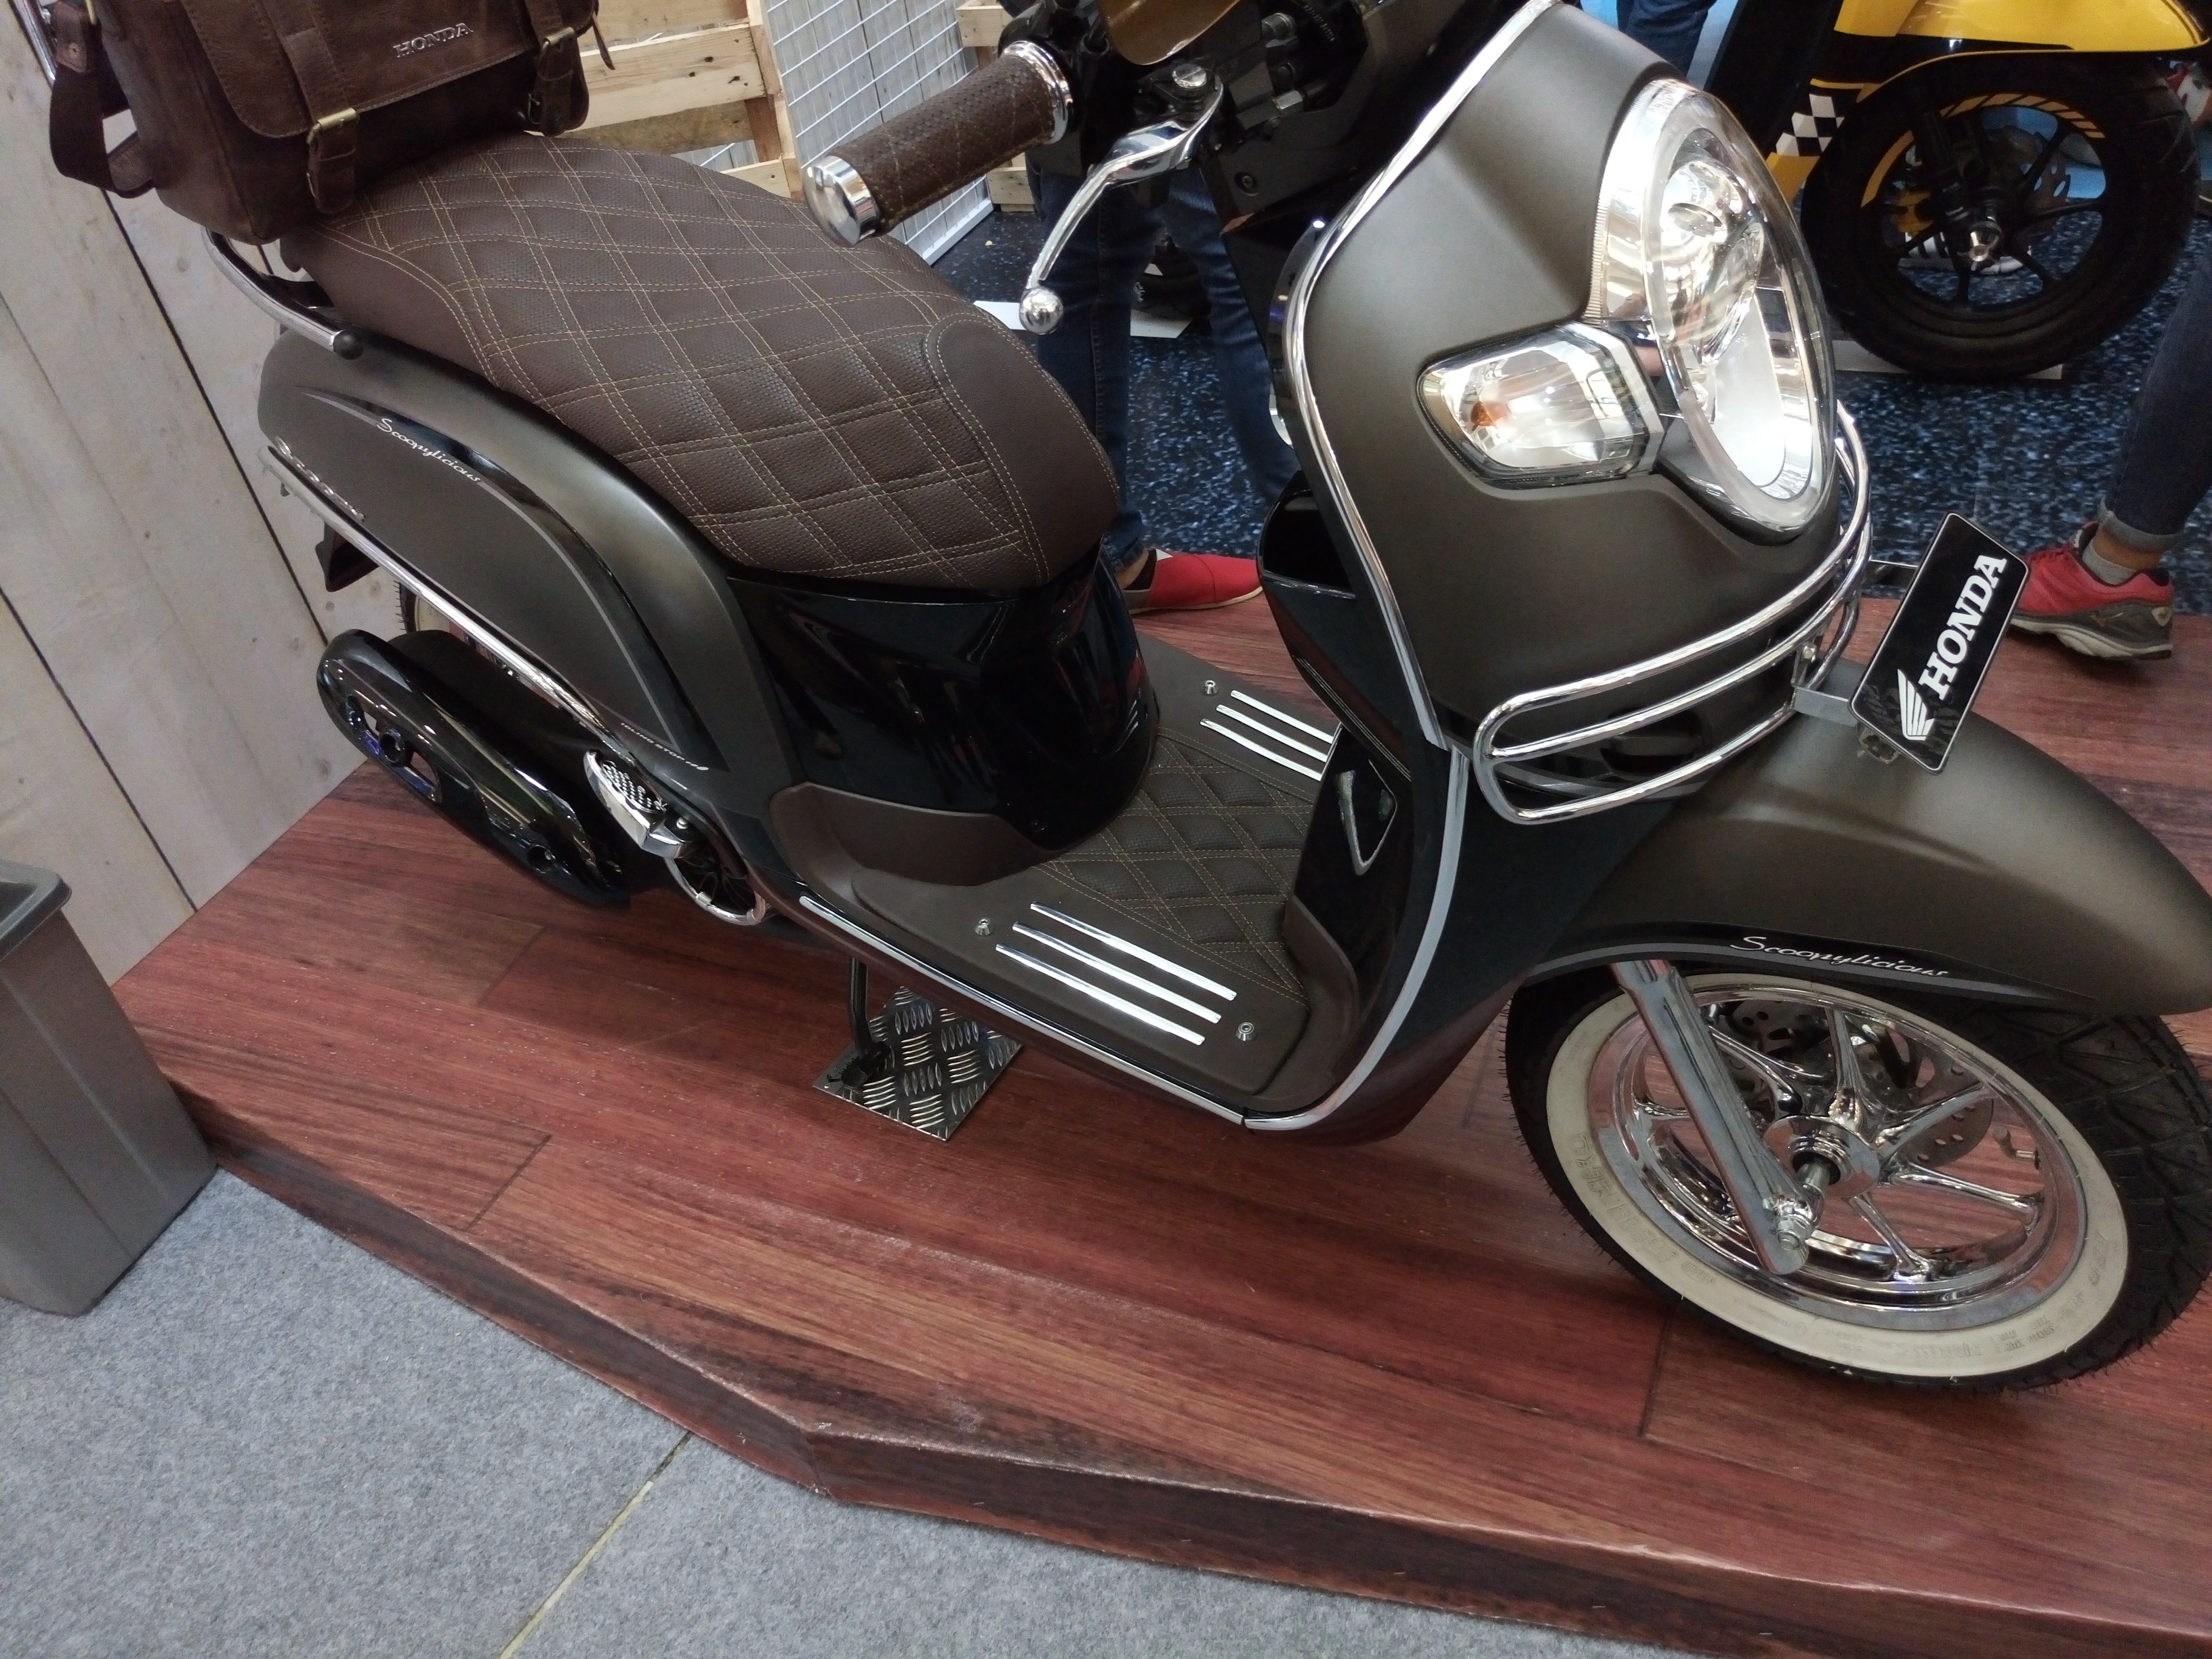 50 Modifikasi Scoopy Warna Hitam Coklat Modifhits